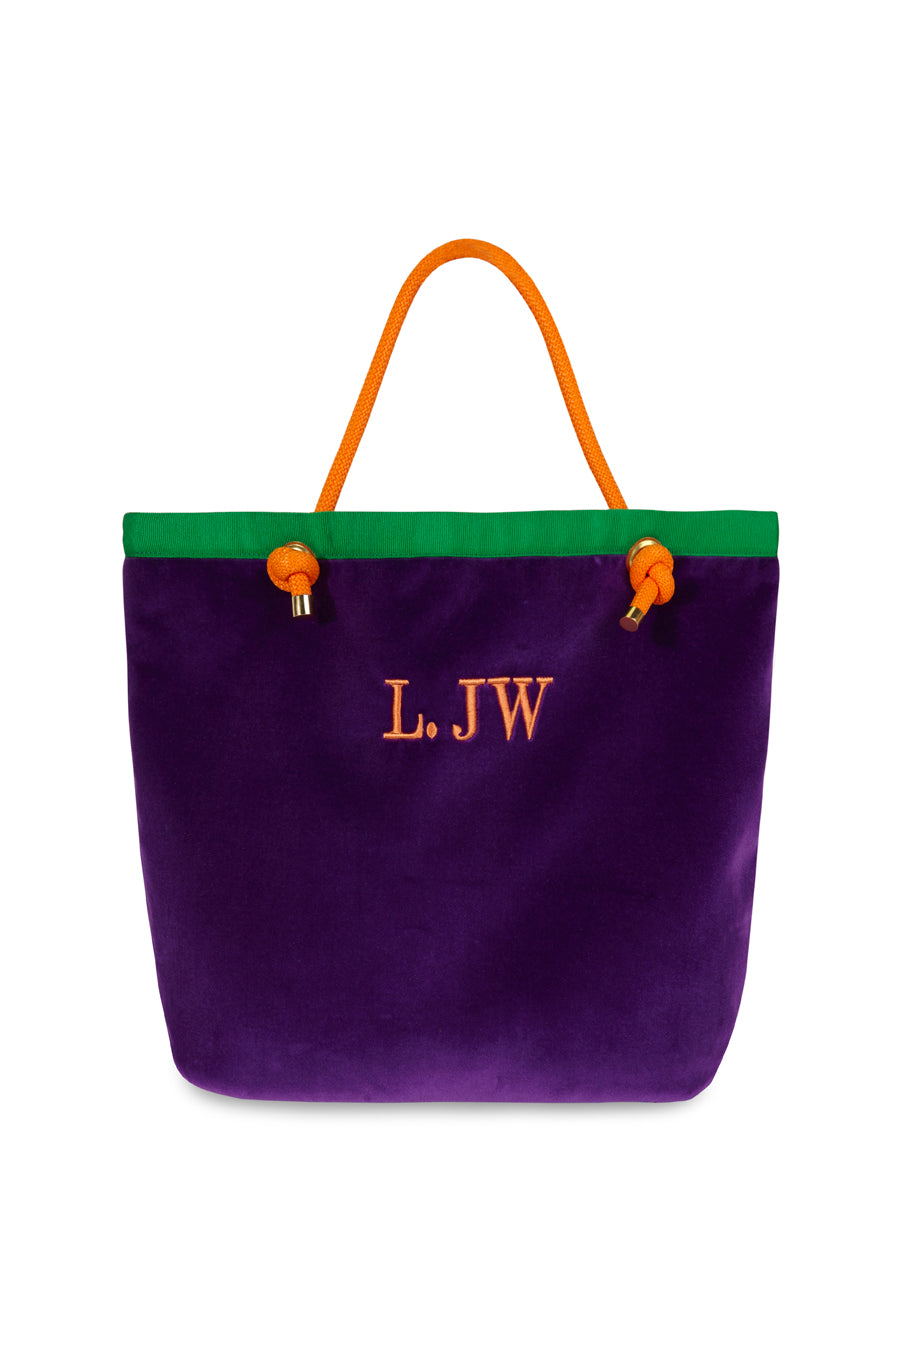 claudine-handbags - Bolso Shopping Personalizado Claudine Terciopelo Morado - ShoppingBag